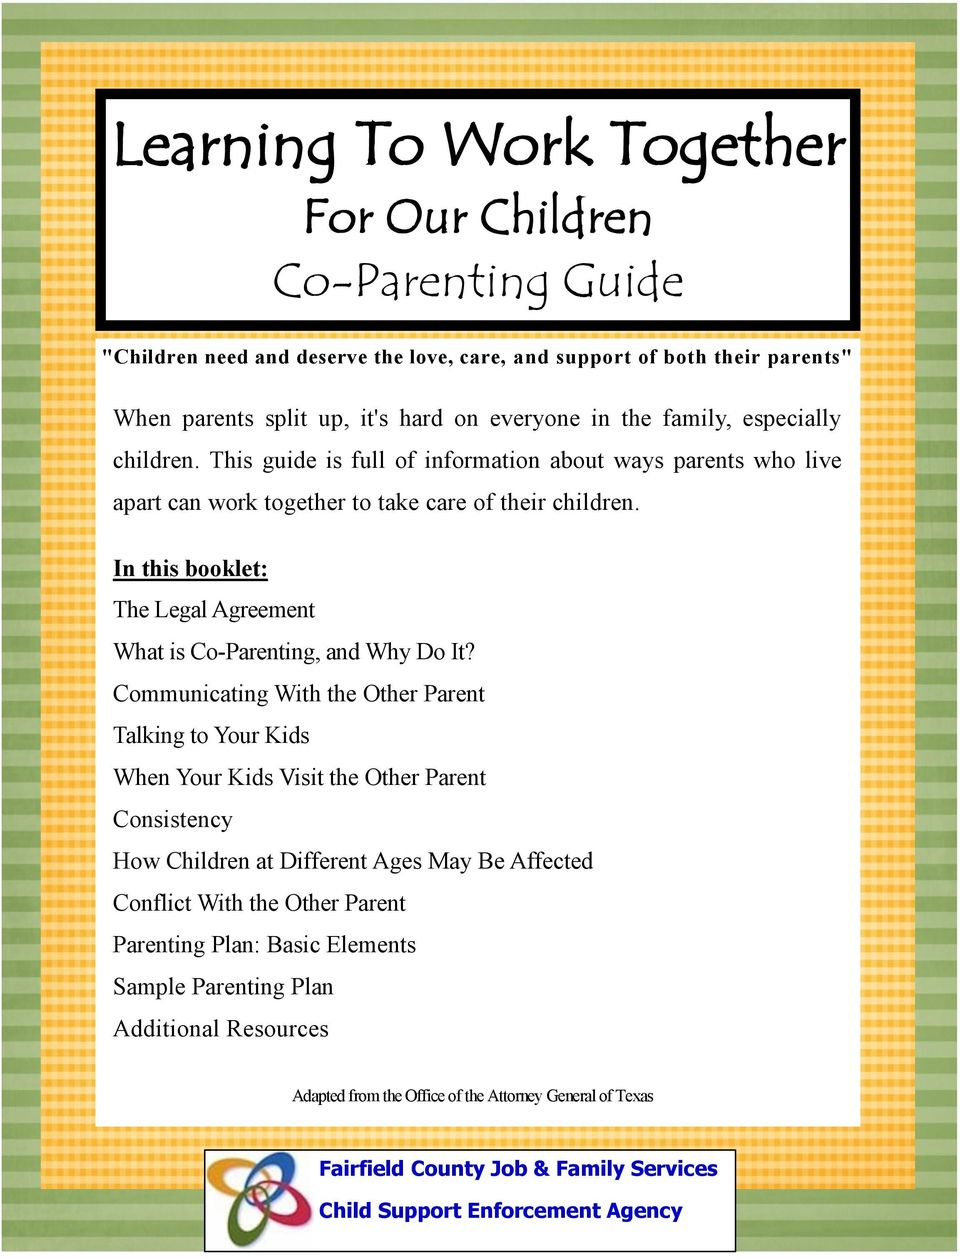 In this booklet: The Legal Agreement What is Co-Parenting, and Why Do It?